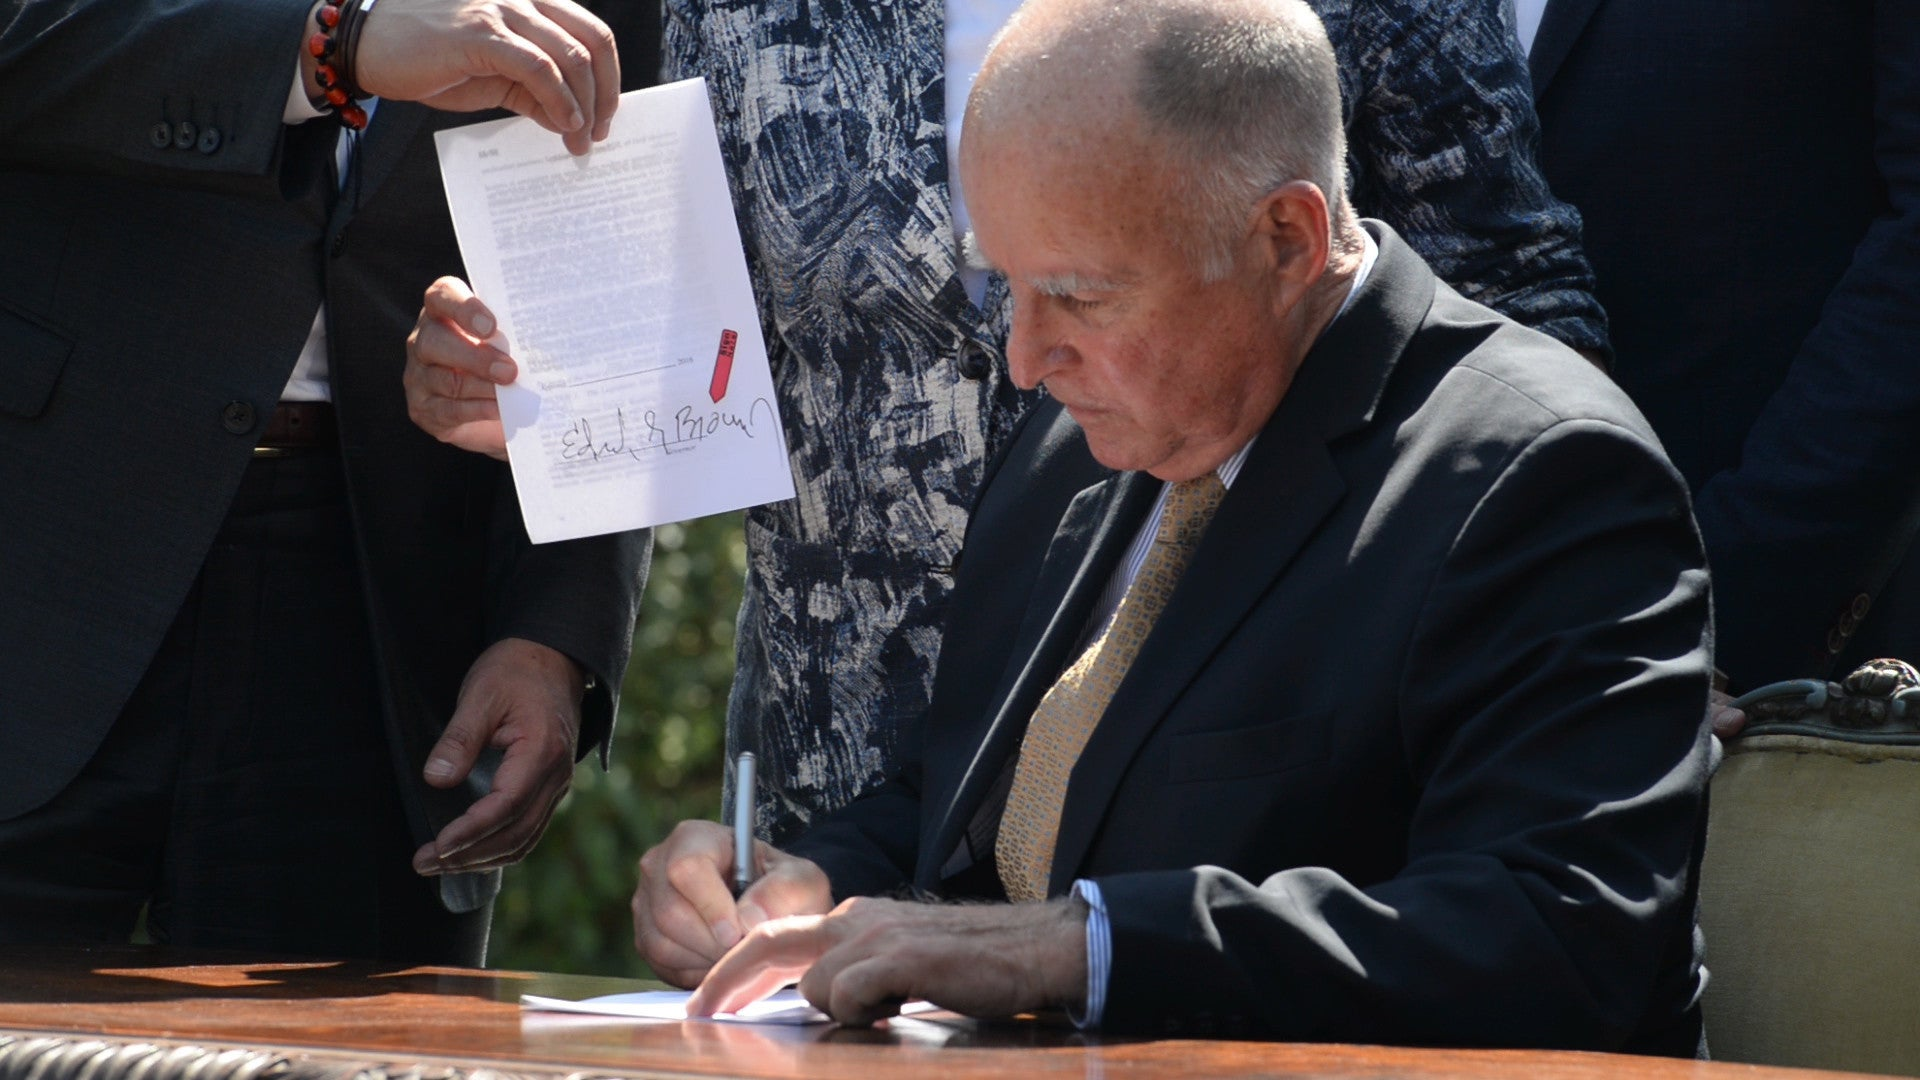 Governor Brown signing bills